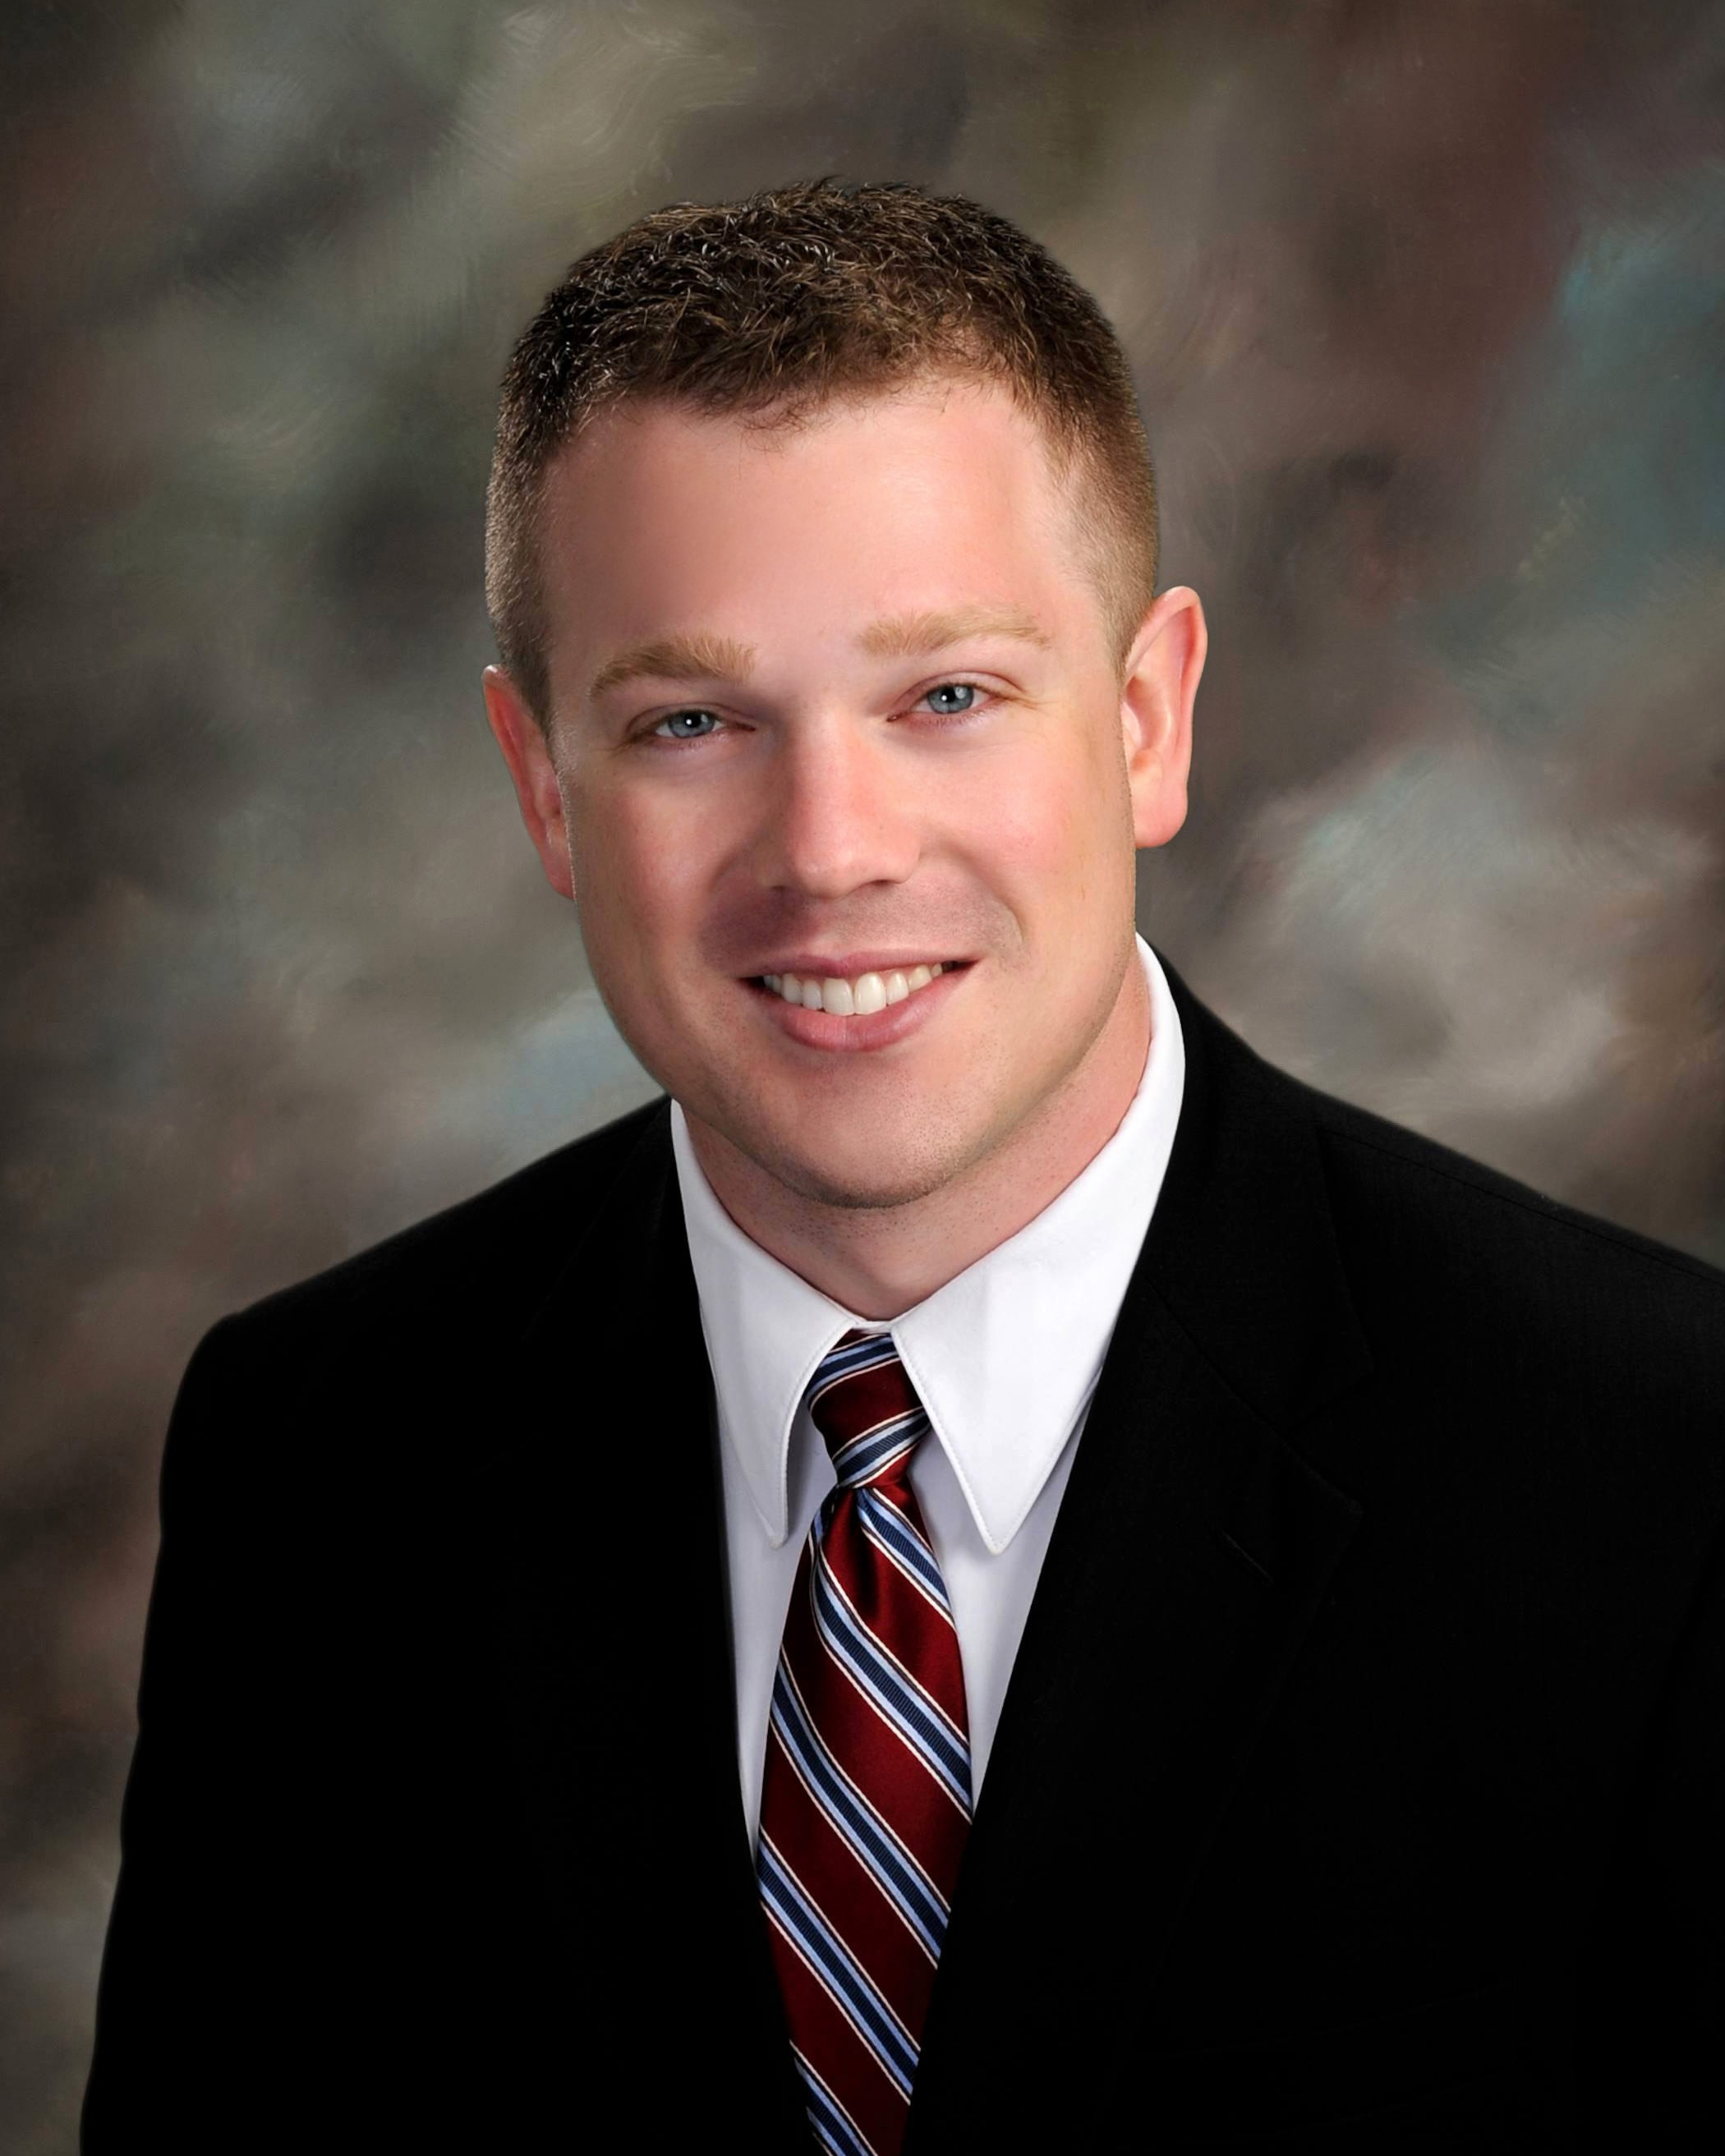 KYLE R. STRIFE Financial Professional & Insurance Agent